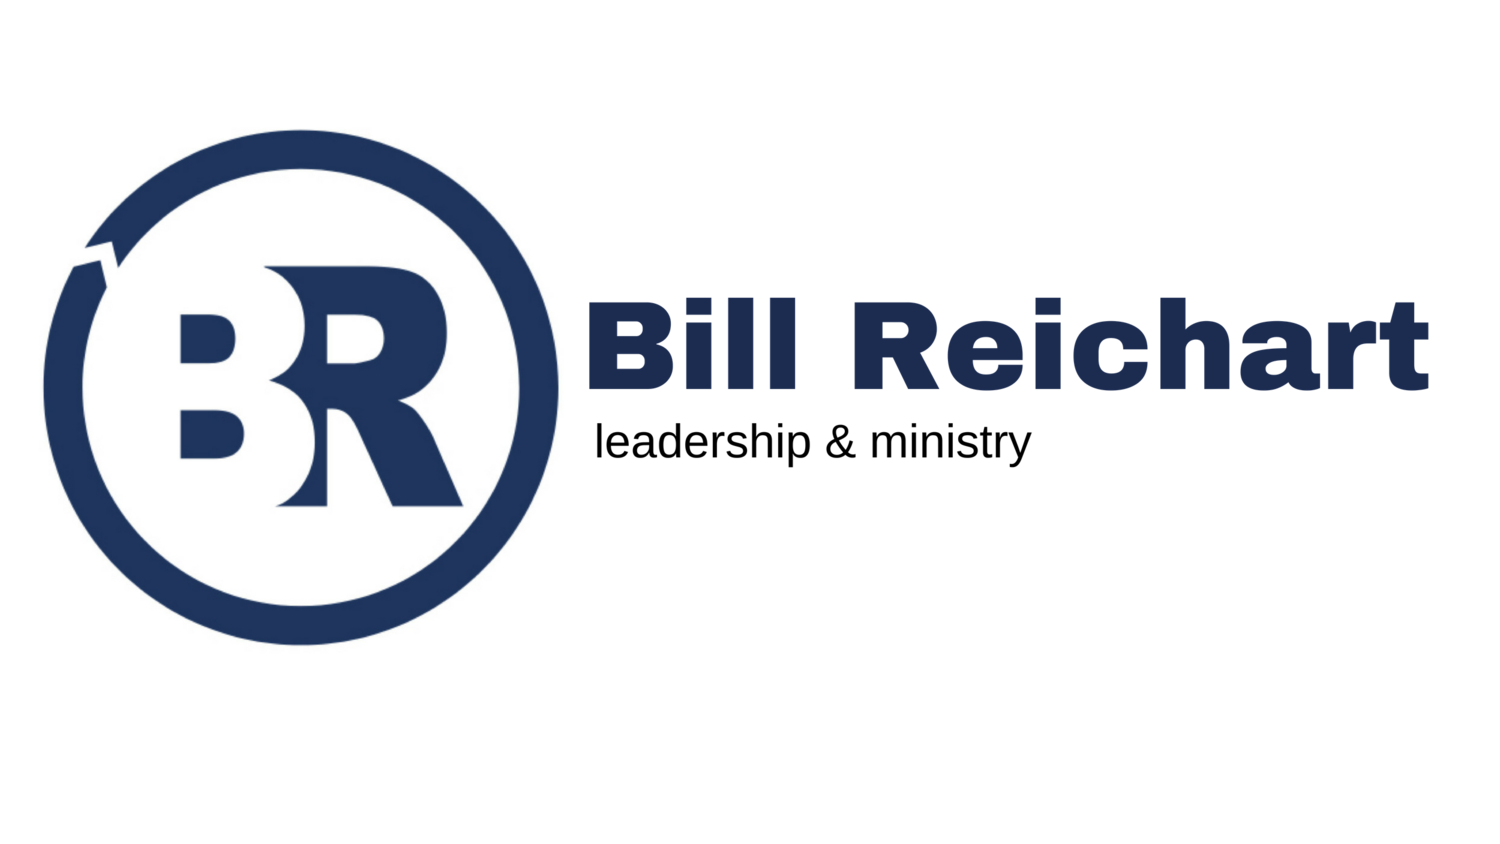 Bill Reichart